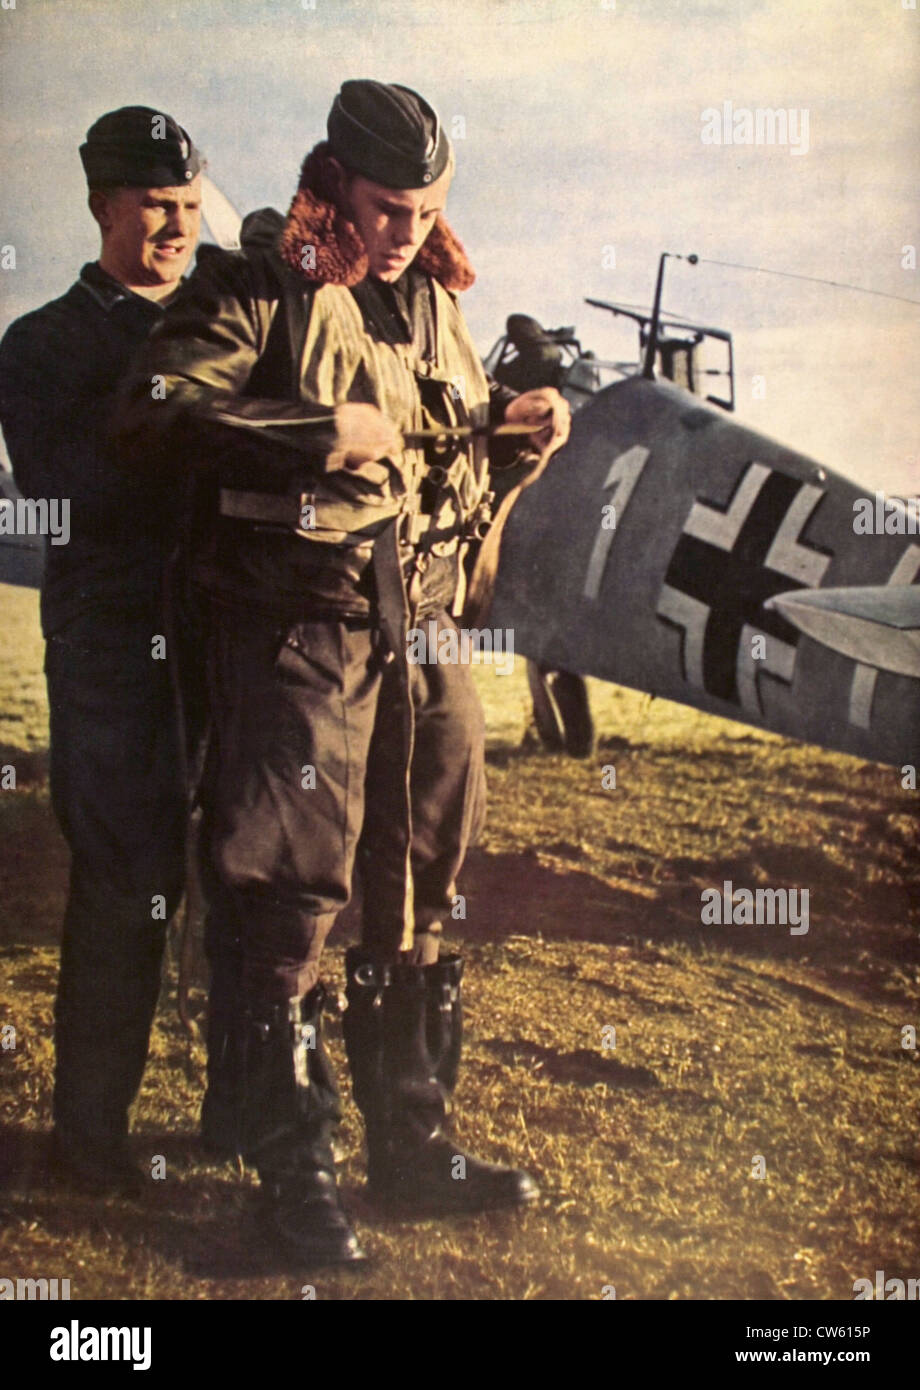 World War II. Checking the equipment of a German aviator before take-off (1941) - Stock Image